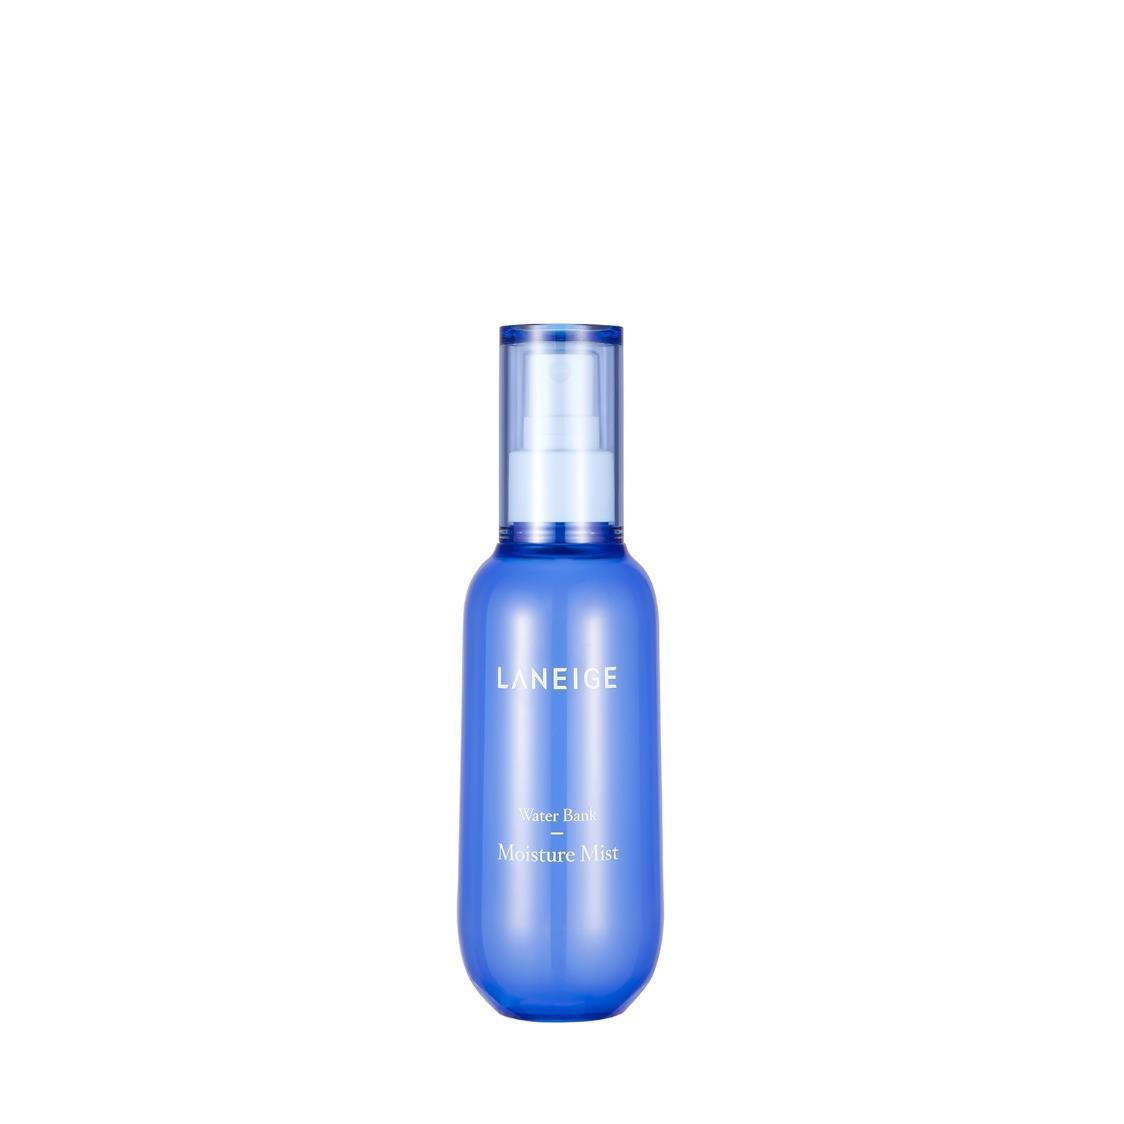 Water Bank Moisture Mist 150ml